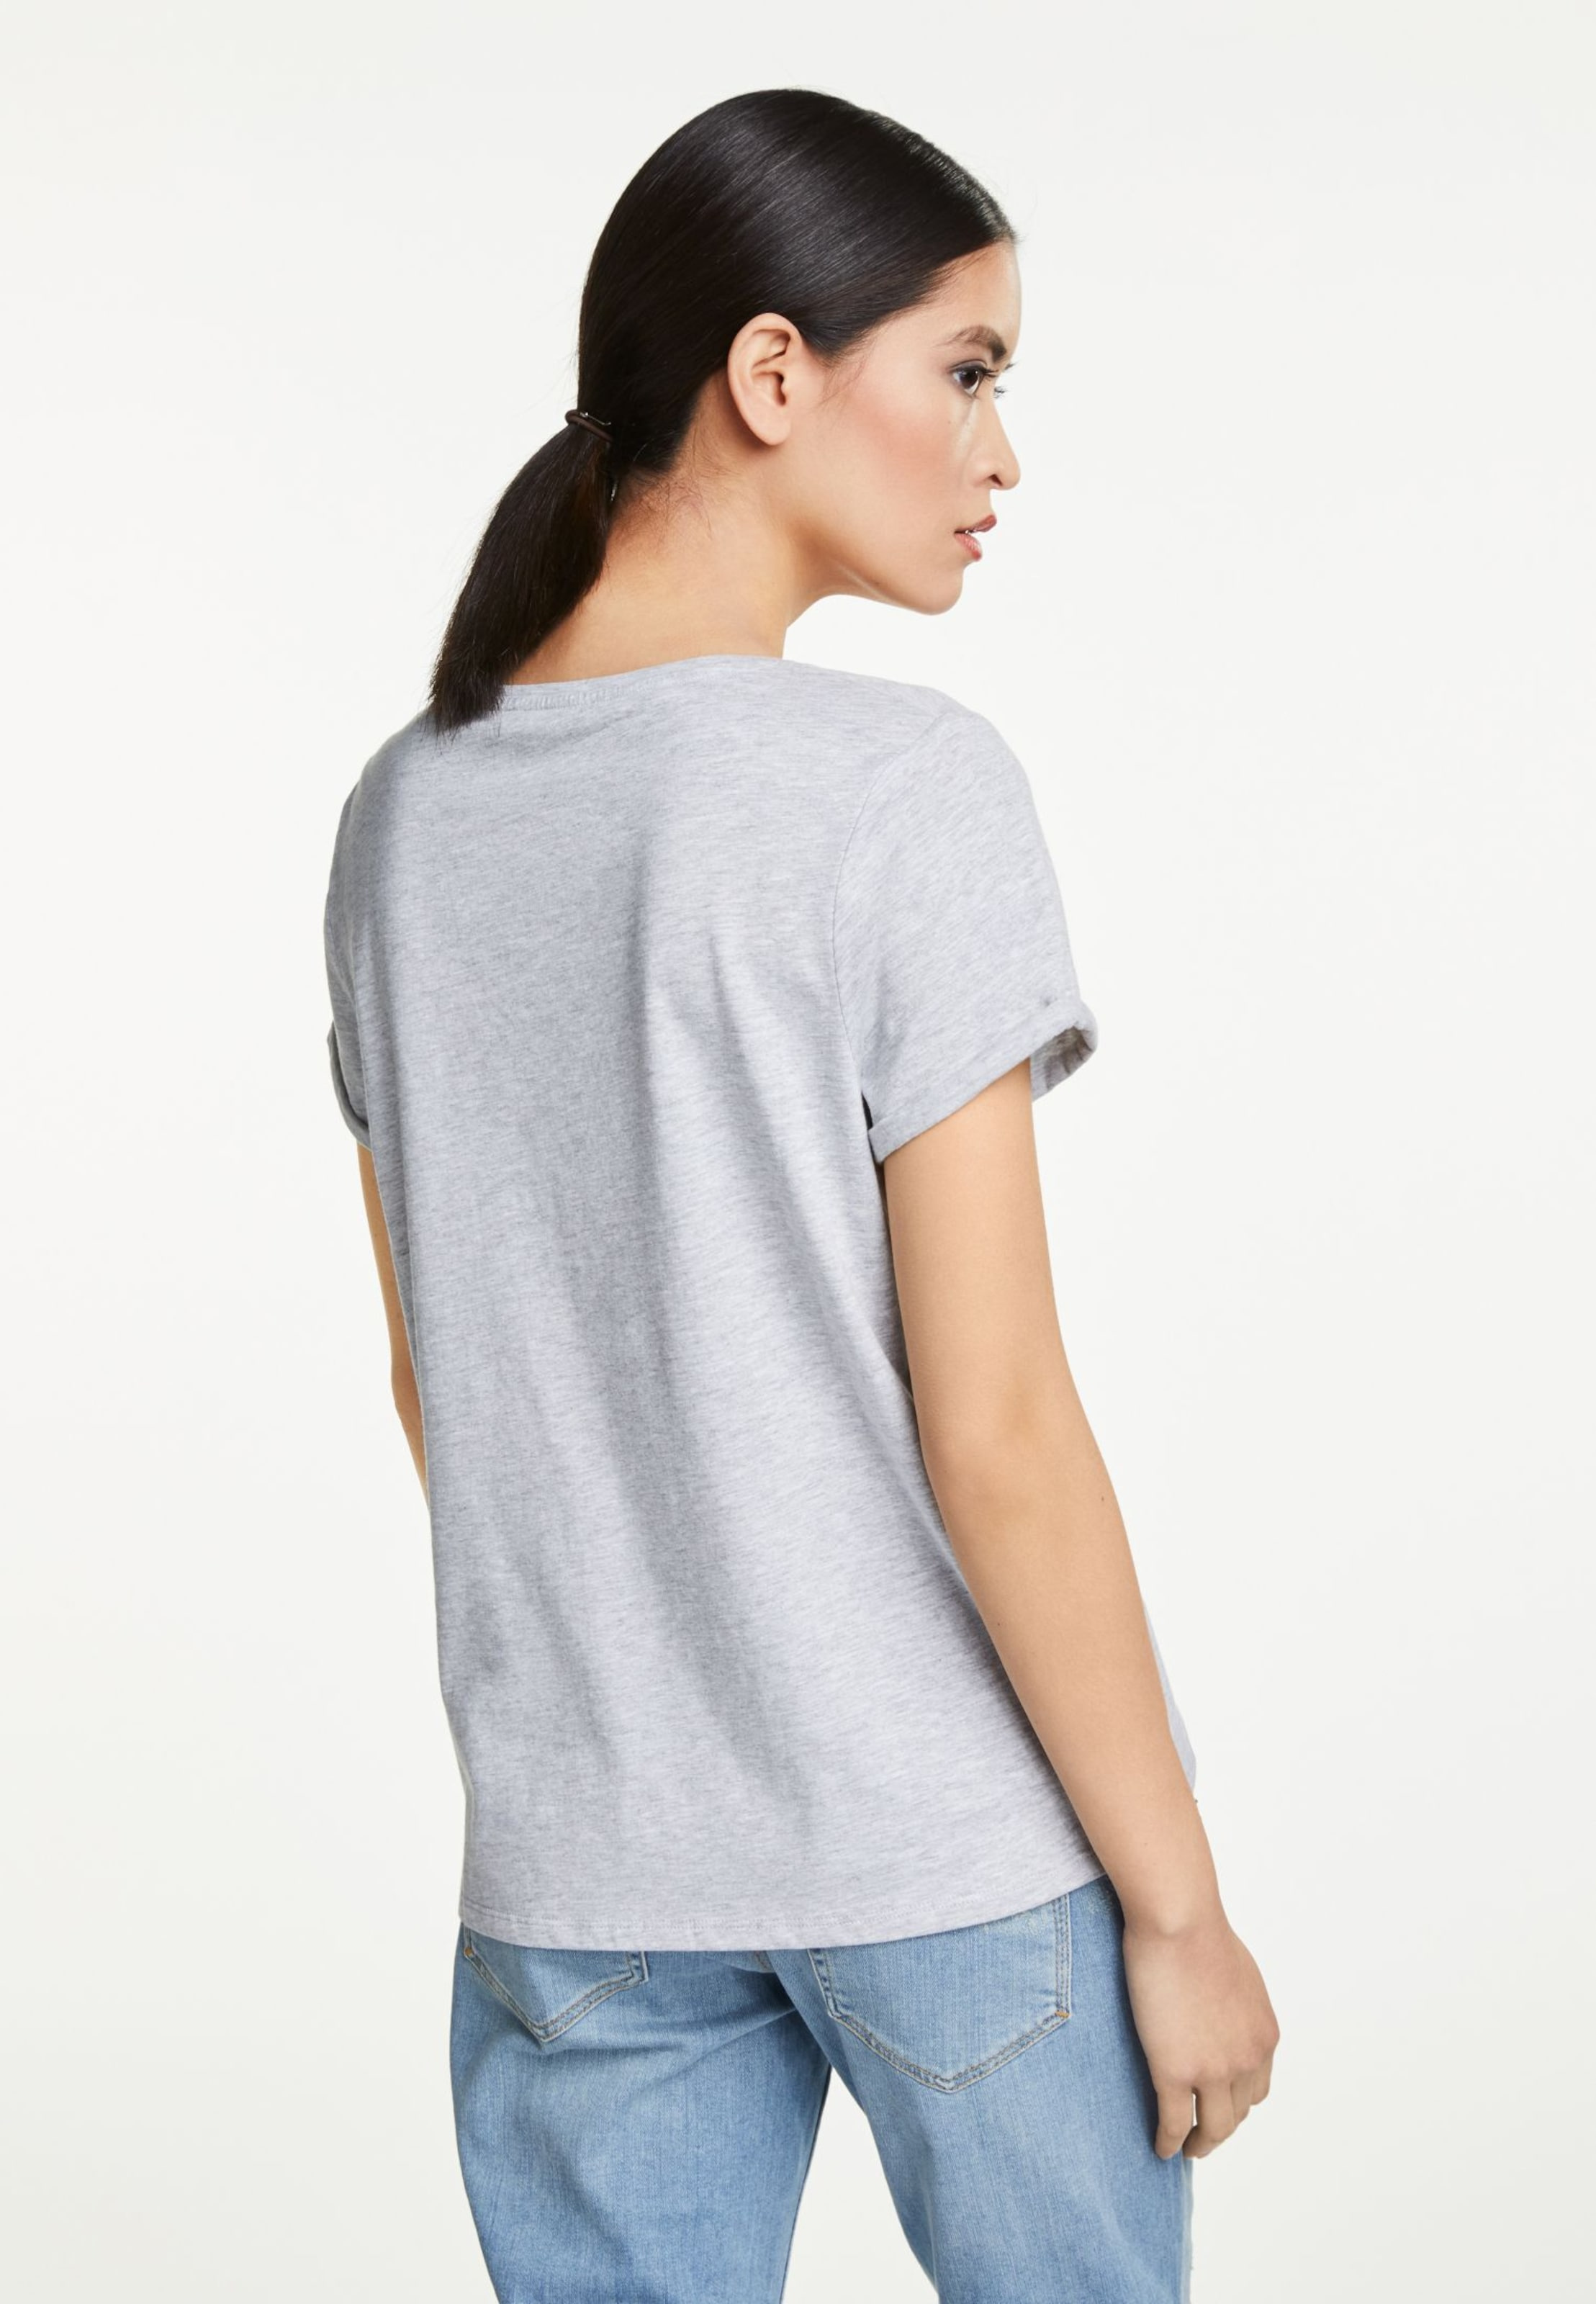 shirt In In Oui shirt T GrauMischfarben Oui T IfYby7g6v